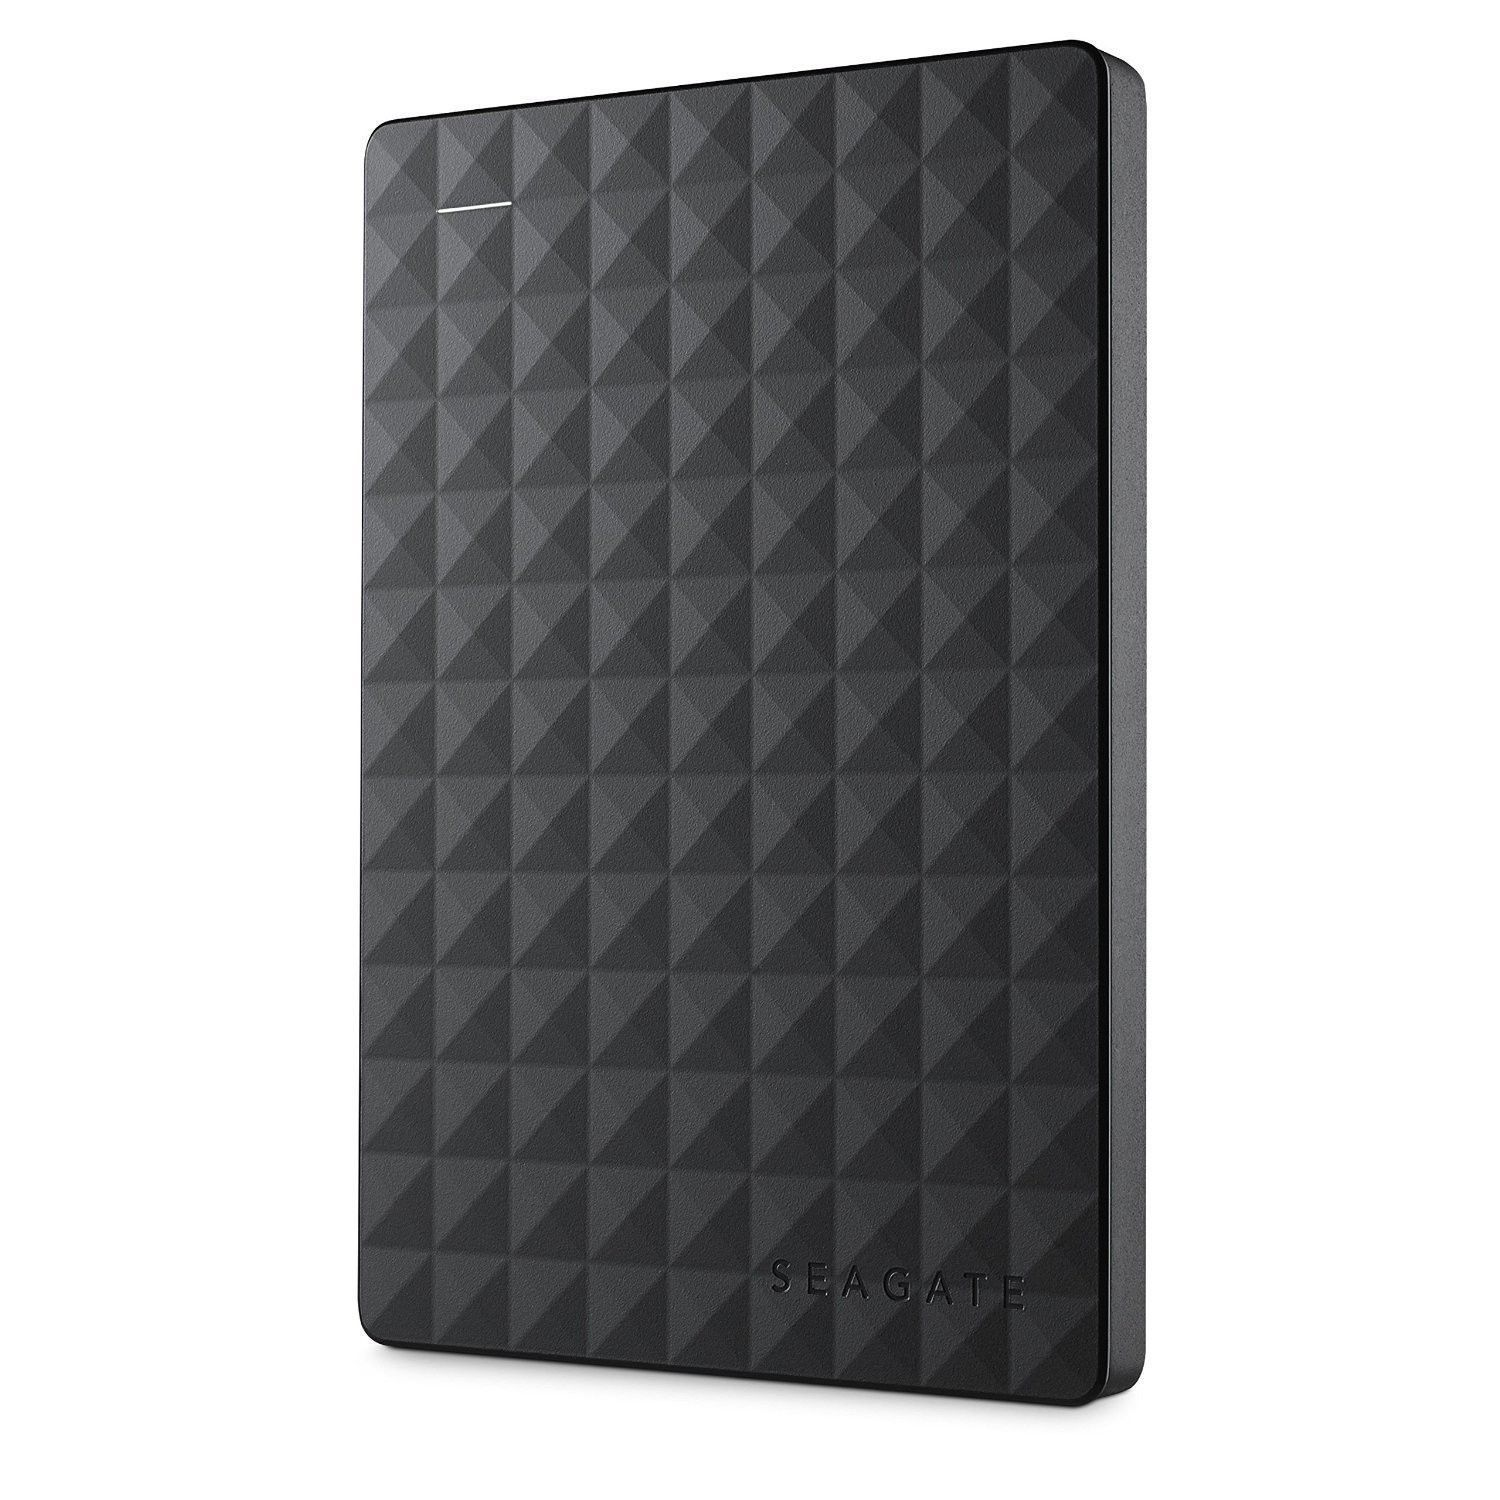 Seagate Expansion 1TB Portable External Hard Drive USB 3.0 (STEA1000400)